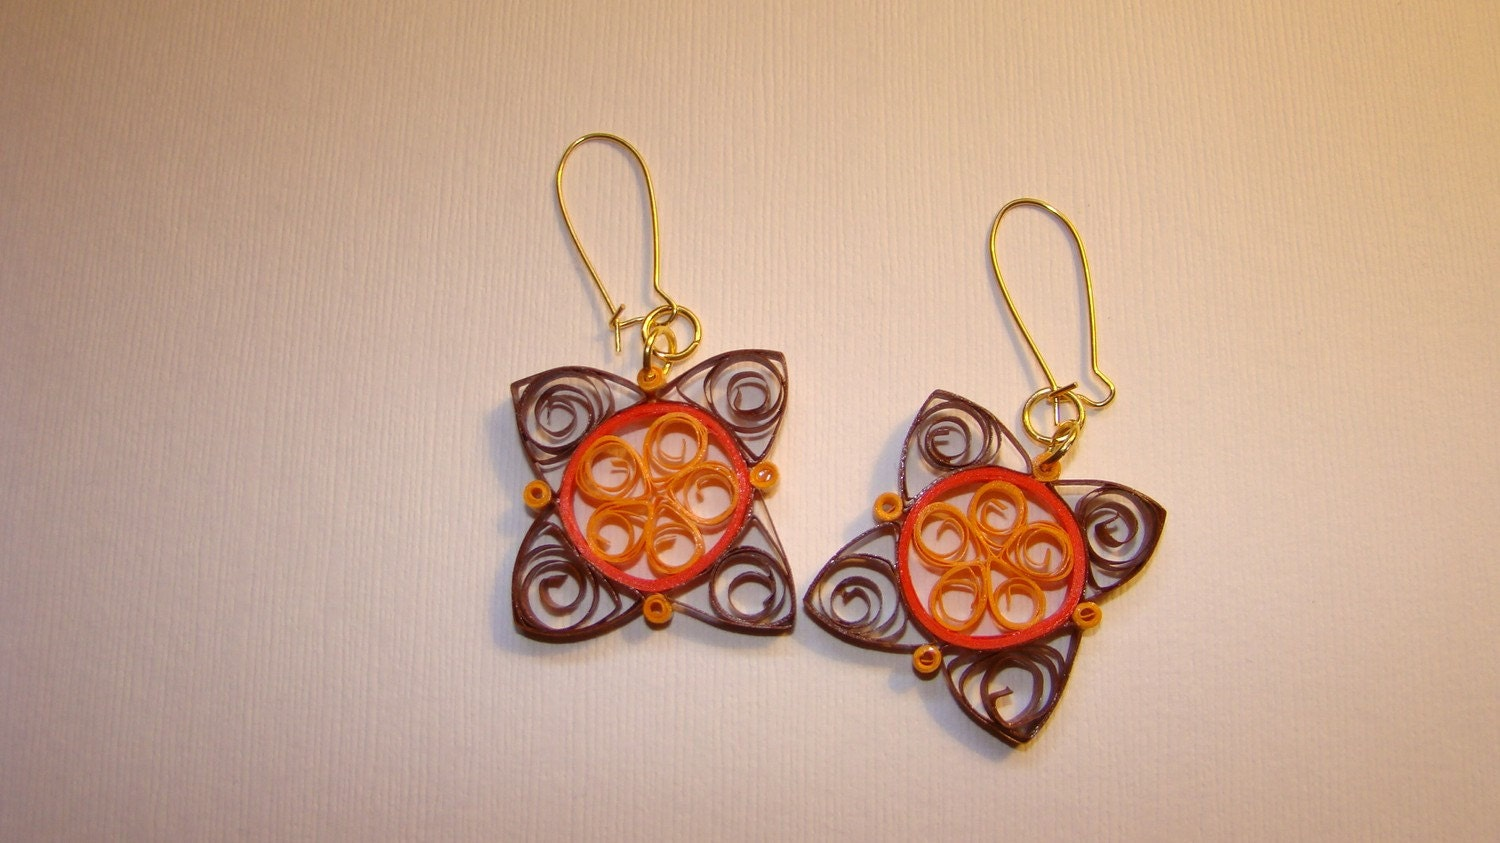 Adorable paper quilled earrings by Rocio Toscano. Filigree